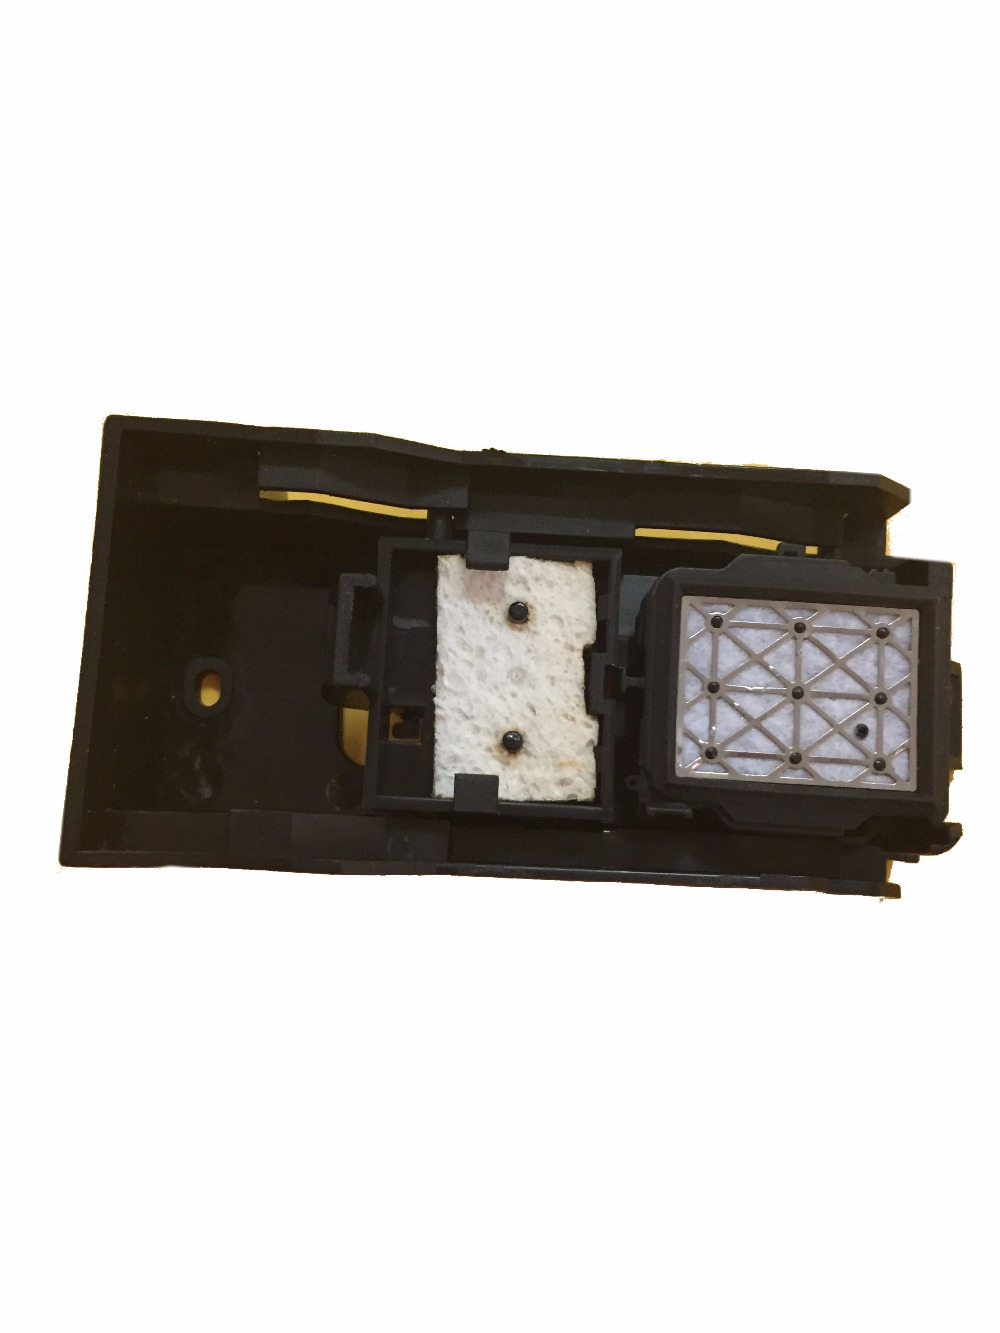 1pcs DX5 Printhead Ink Cap Station Assembly For Mimaki JV33  JV5 CJV30 Capping station DX5 head Cleaning Capping station original dx4 printer cap station for roland xj 740 640 both water based and solvent based capping station top